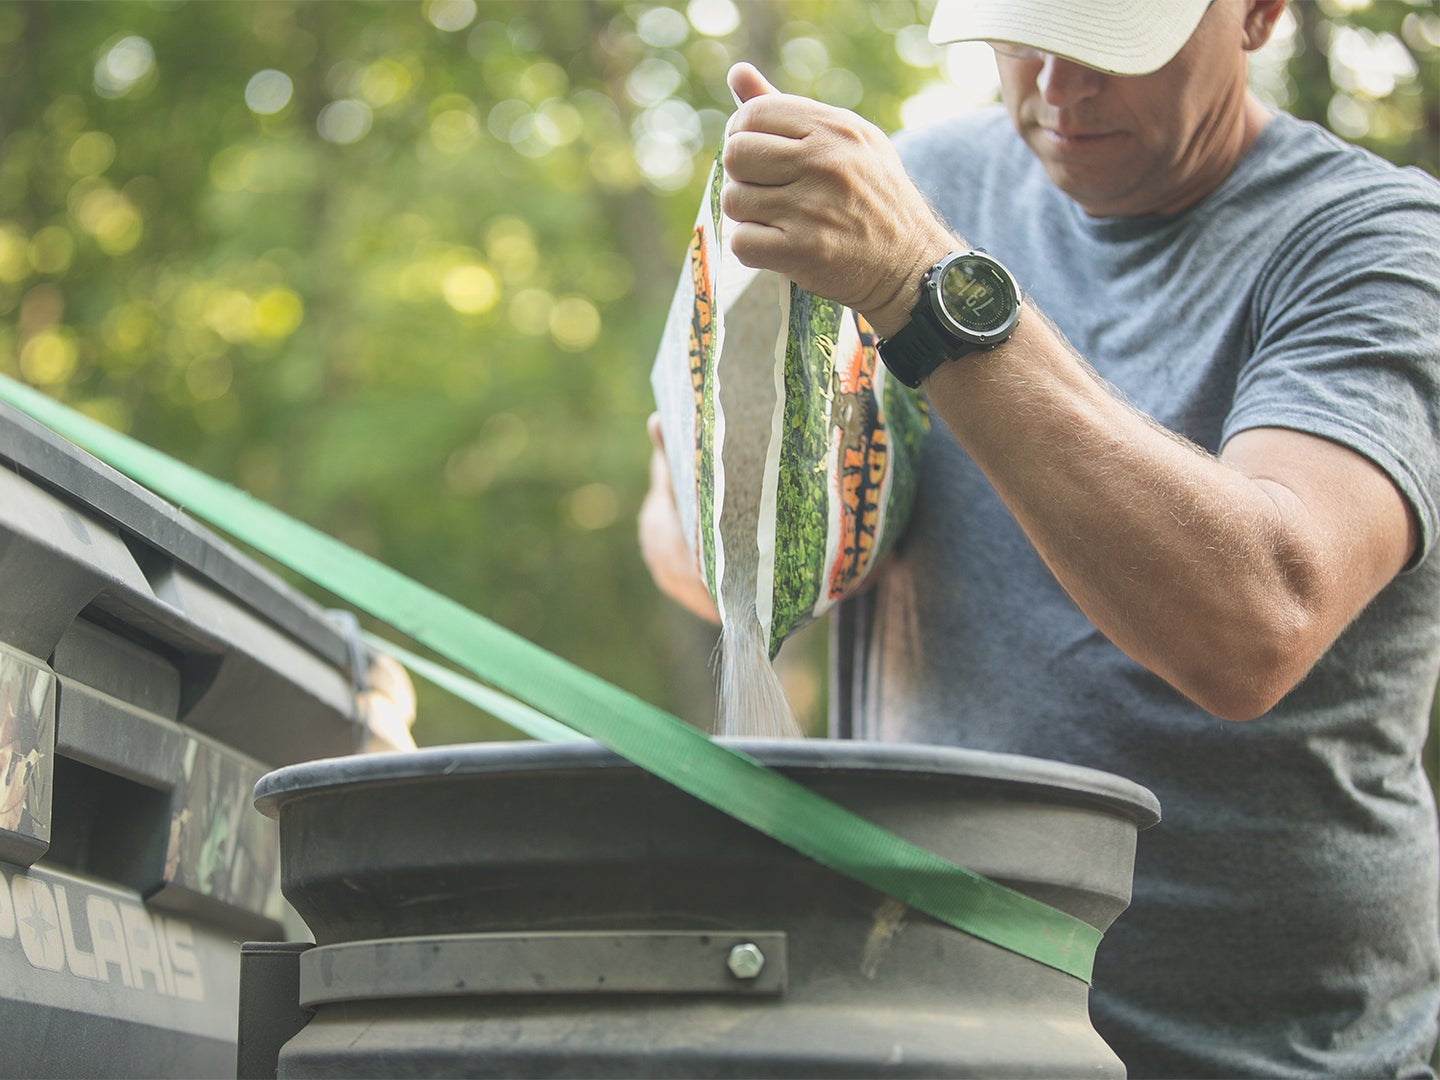 man pouring clover seeds into a seed distributor